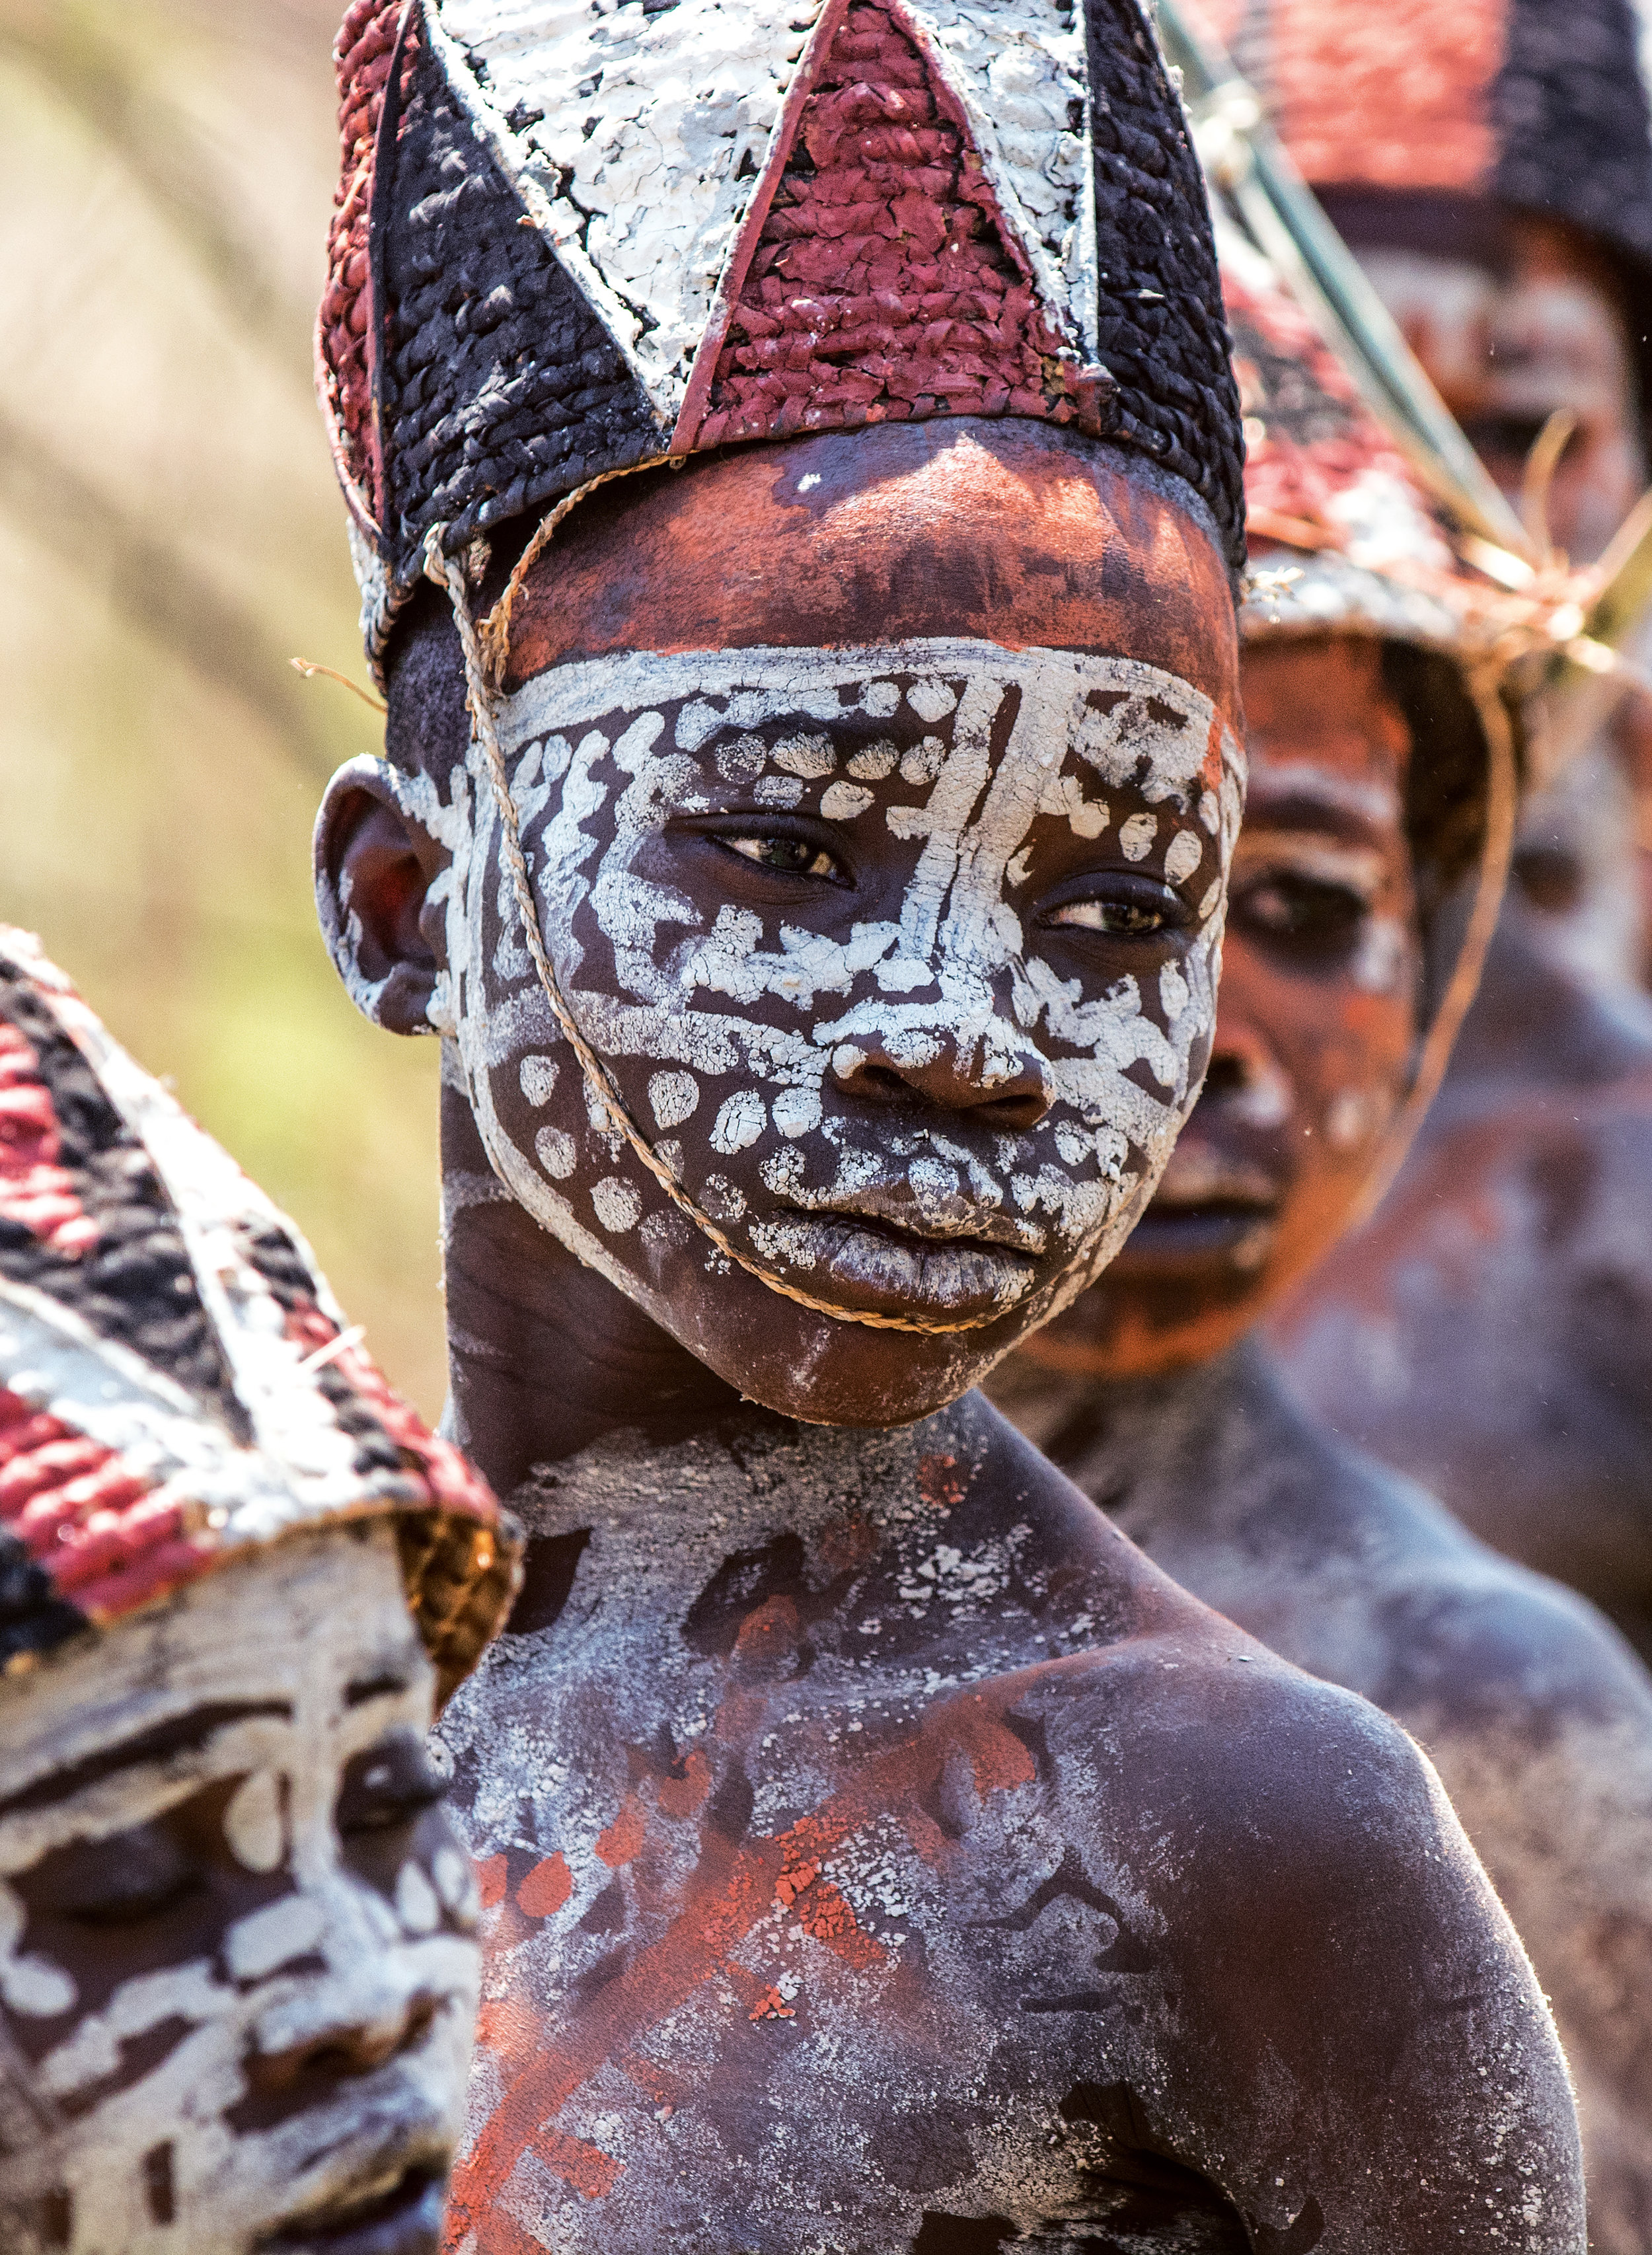 The boys have graduated from their Mukanda initiation, wearing woven hats painted with ocher and charcoal, their bodies covered in chalk. © African Twilight: The Vanishing Cultures and Ceremonies of the African Continent by Carol Beckwith and Angela Fisher, Rizzoli, 2018.